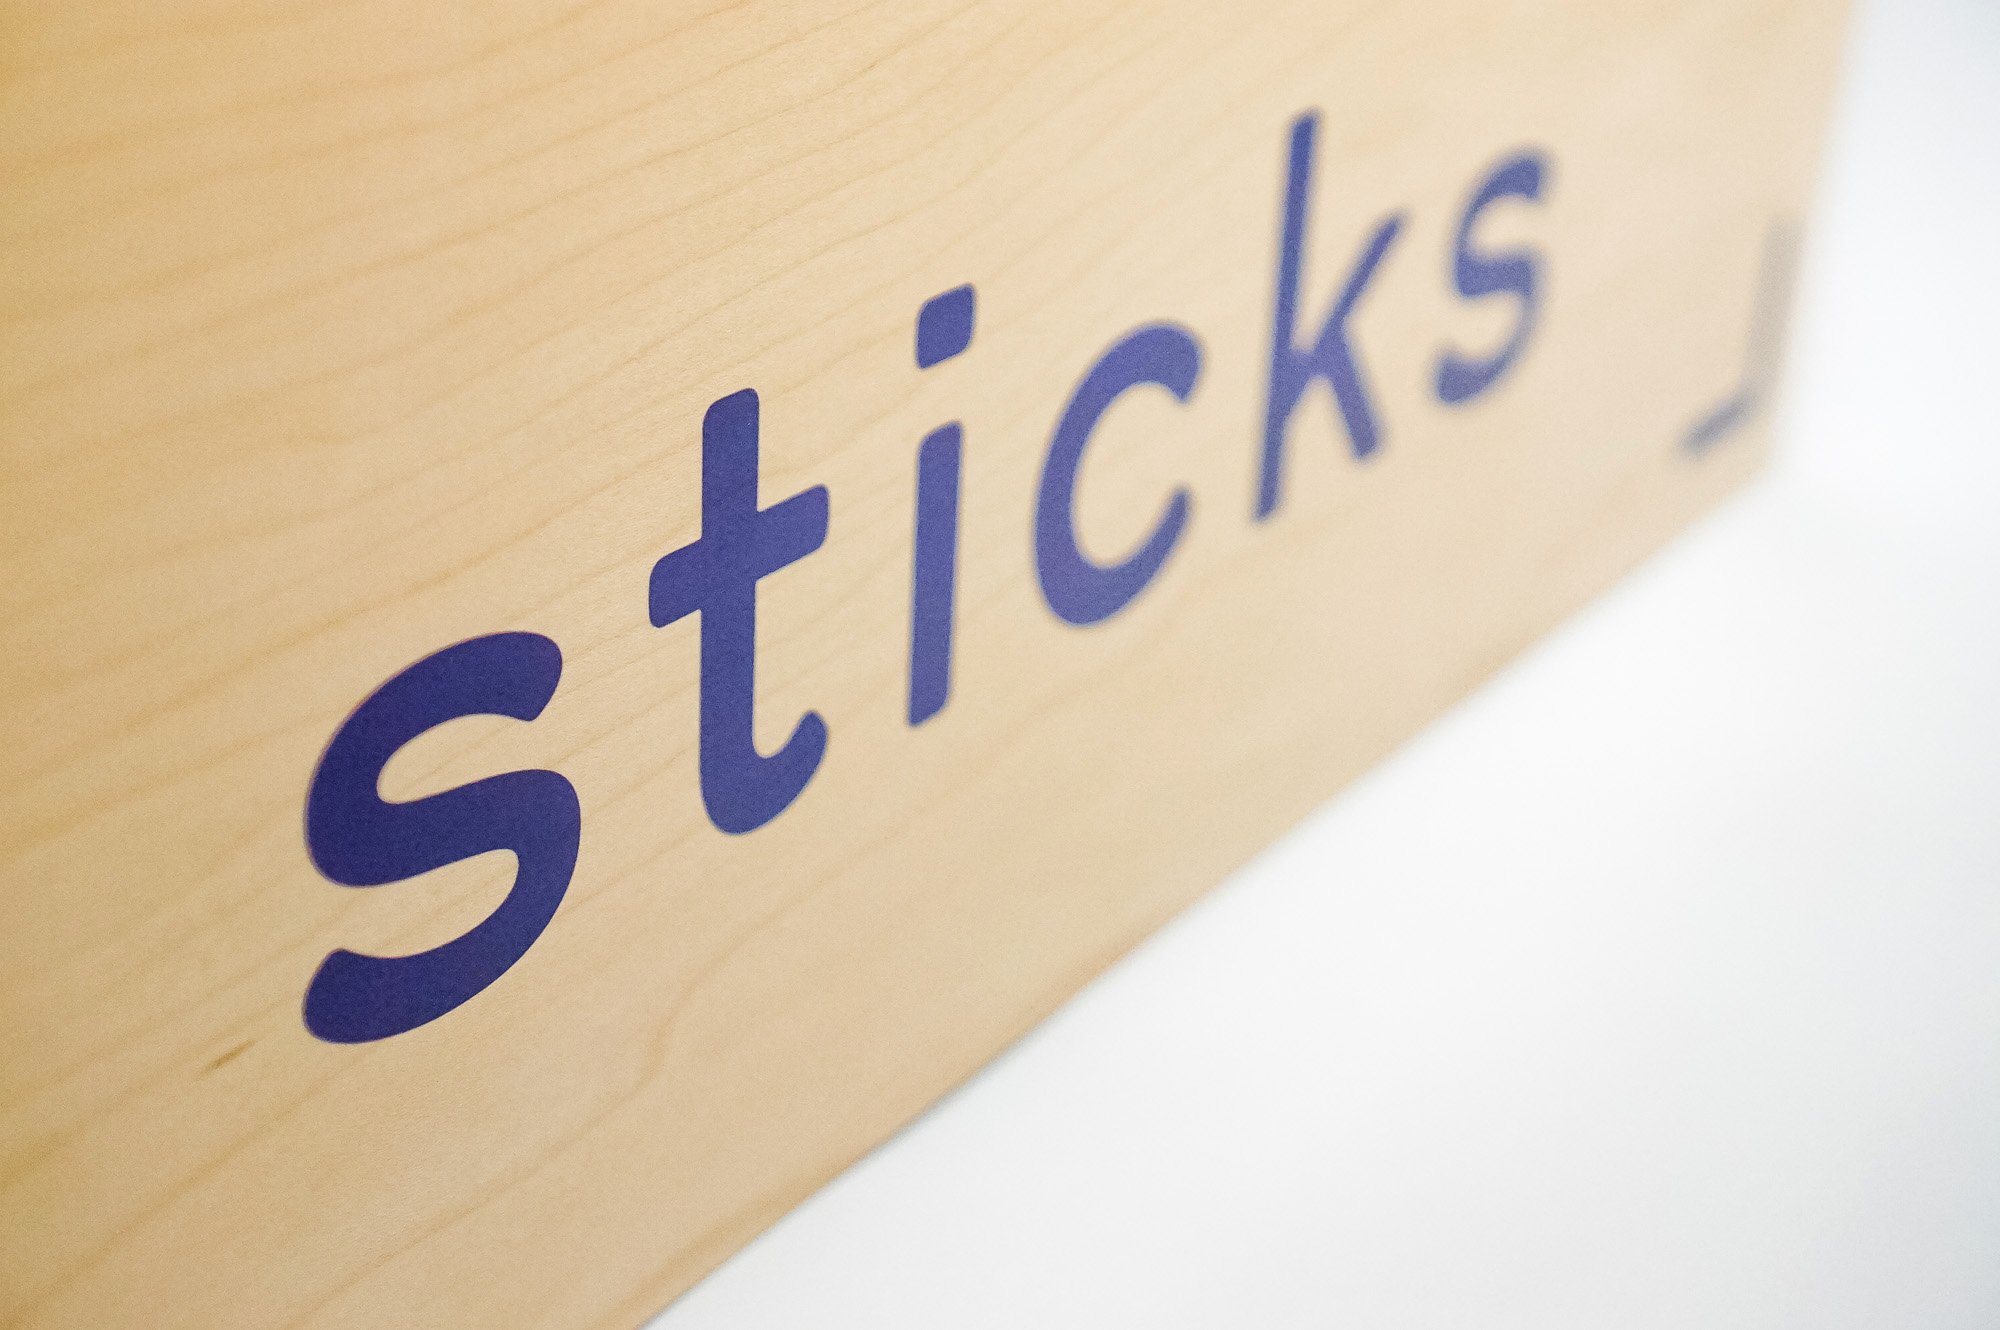 Light wood event sign with blue logo for Sticks, a kidswear company.